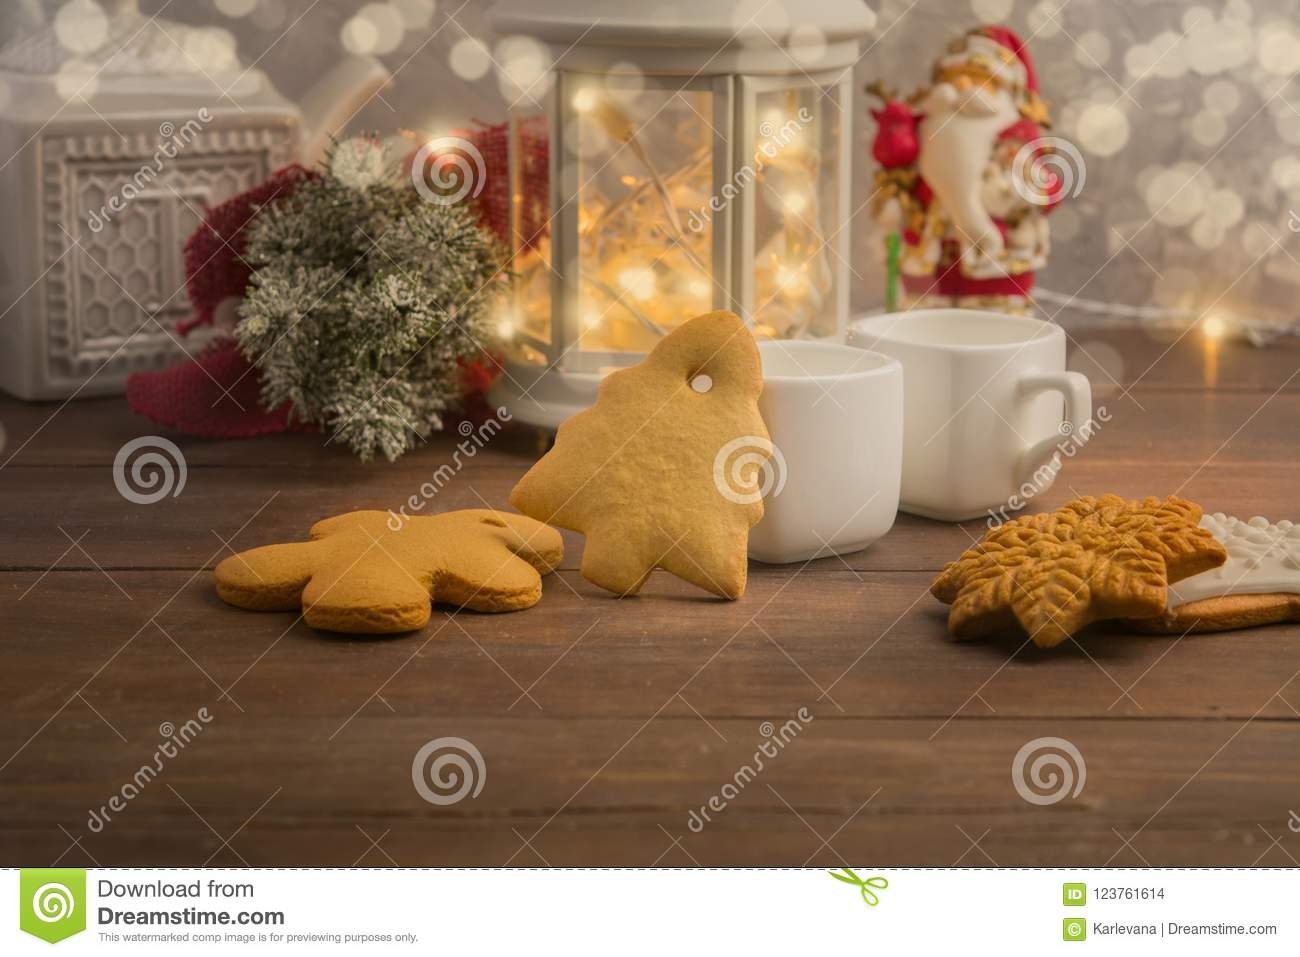 Cozy winter at home with hot drink and cookies. Christmas time with tea and garland